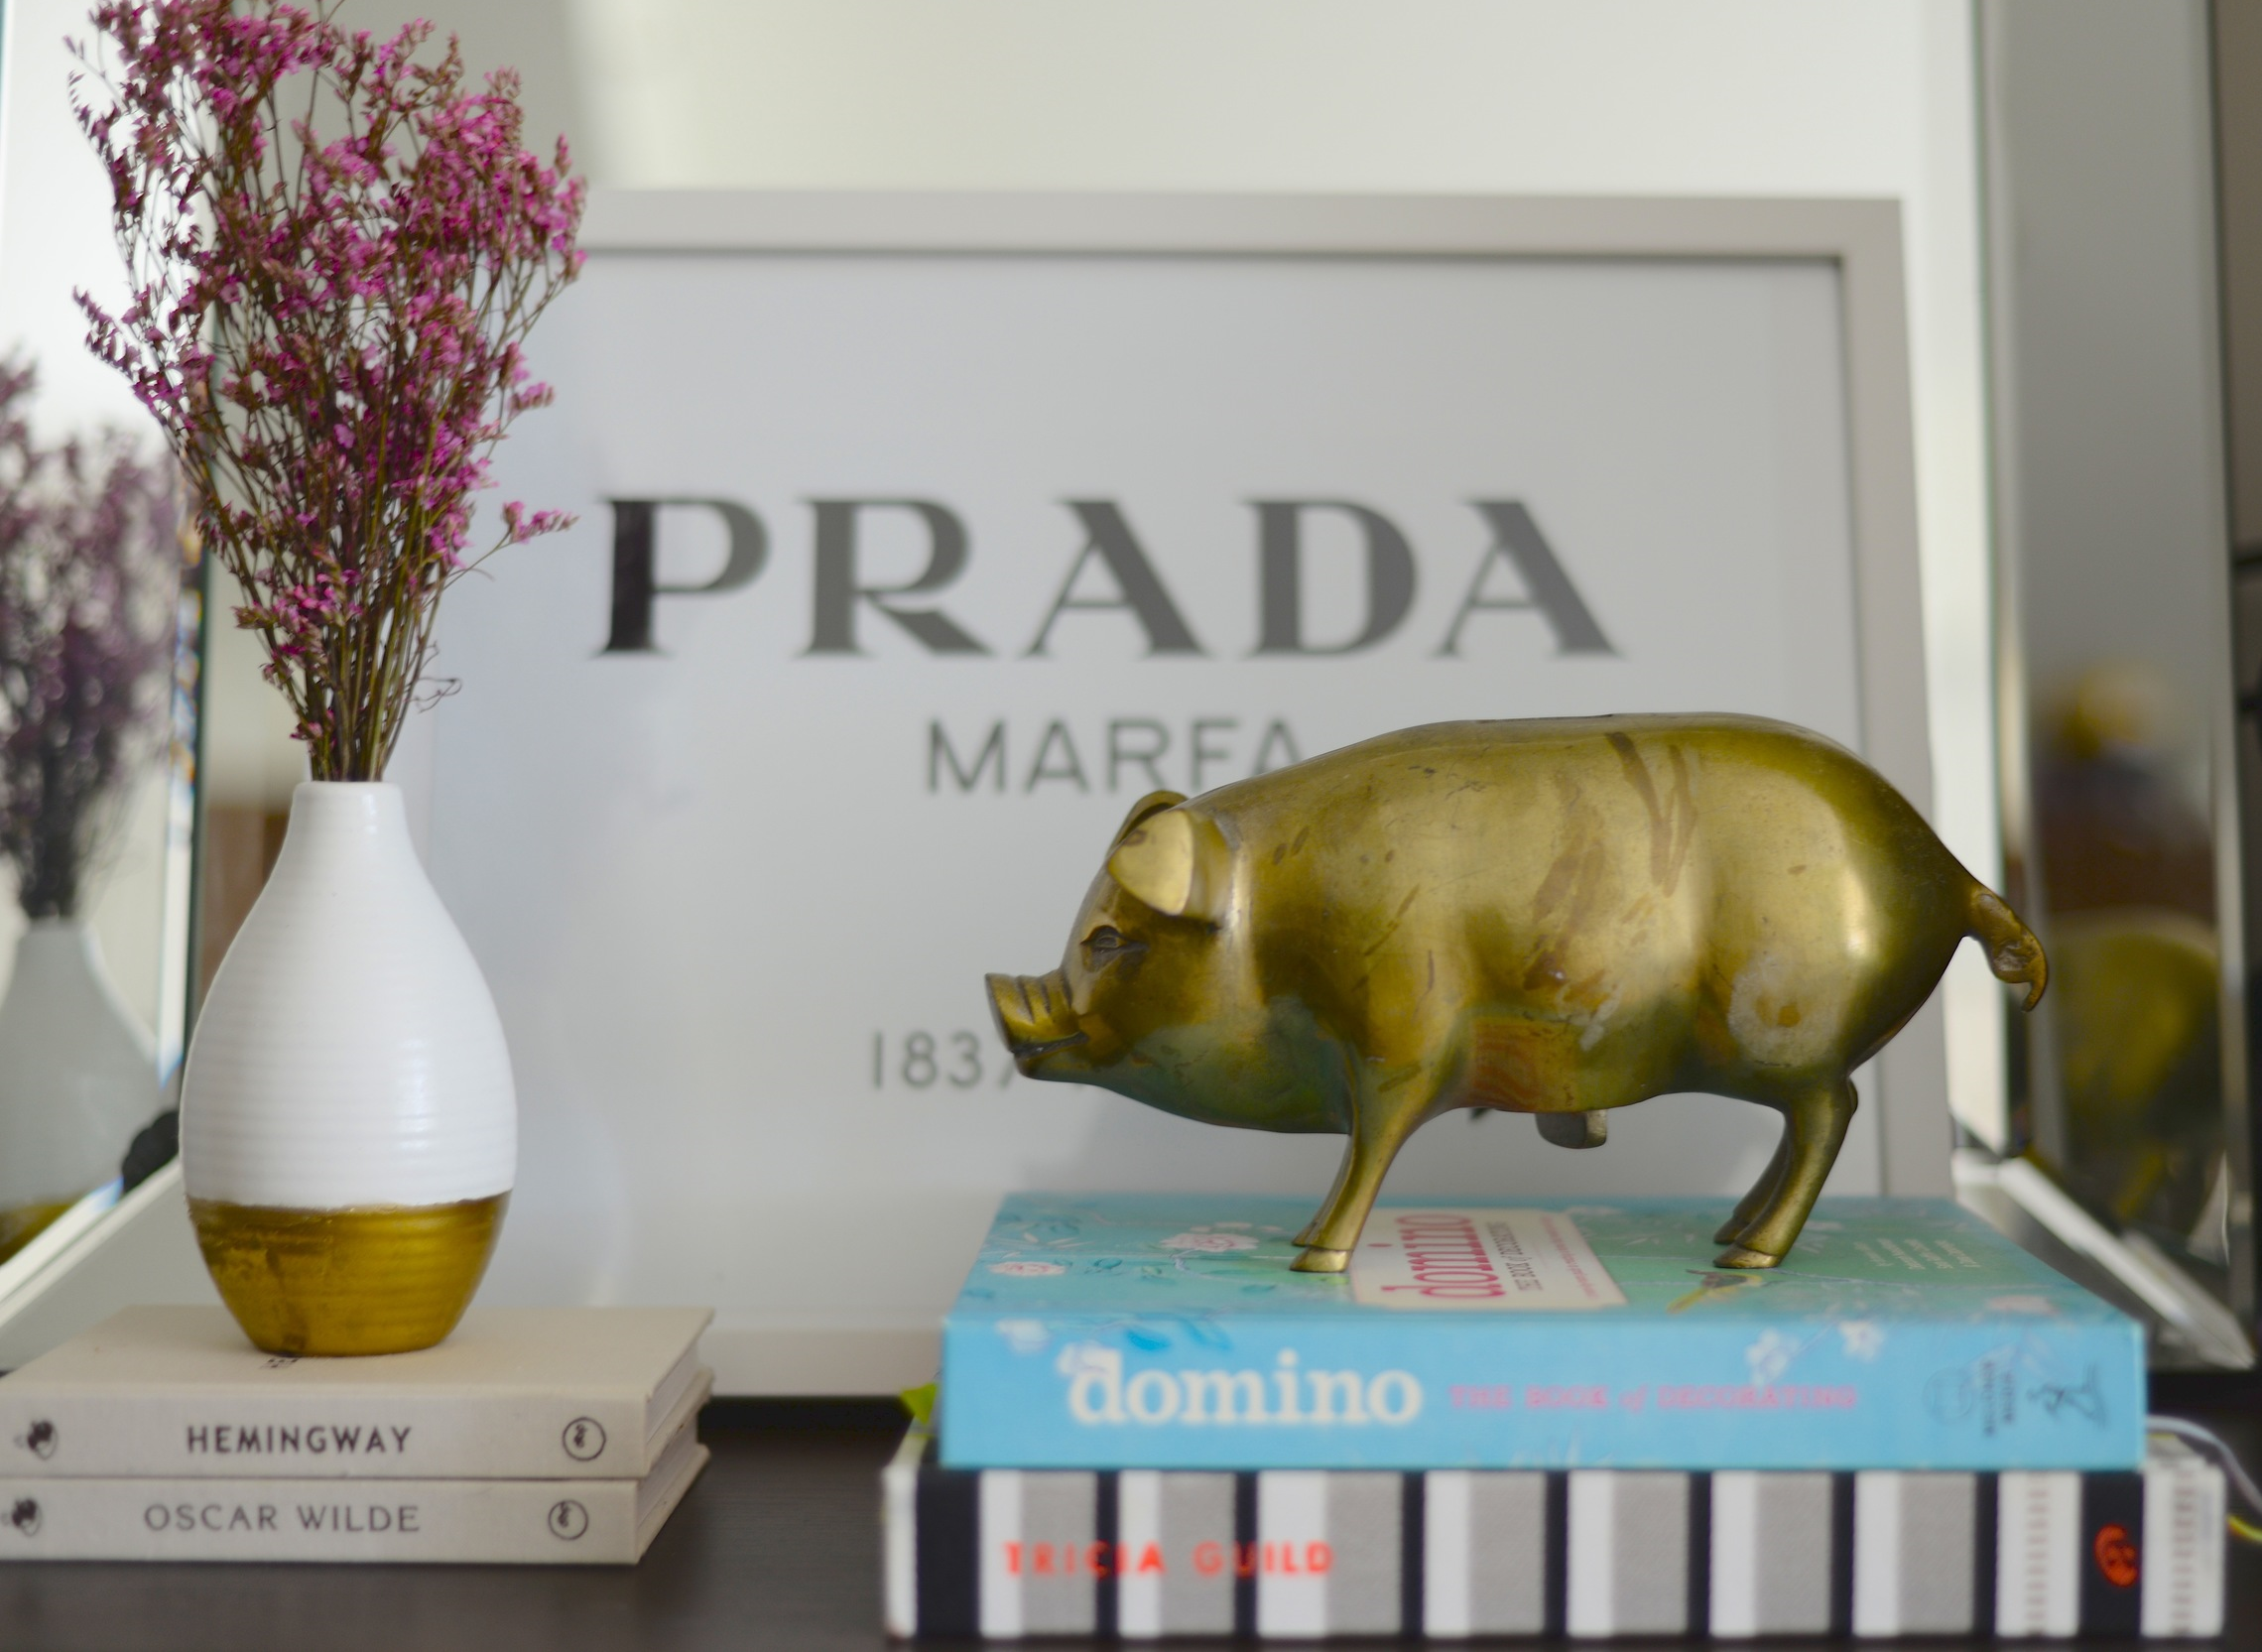 tricia guild, domino book, brass pig